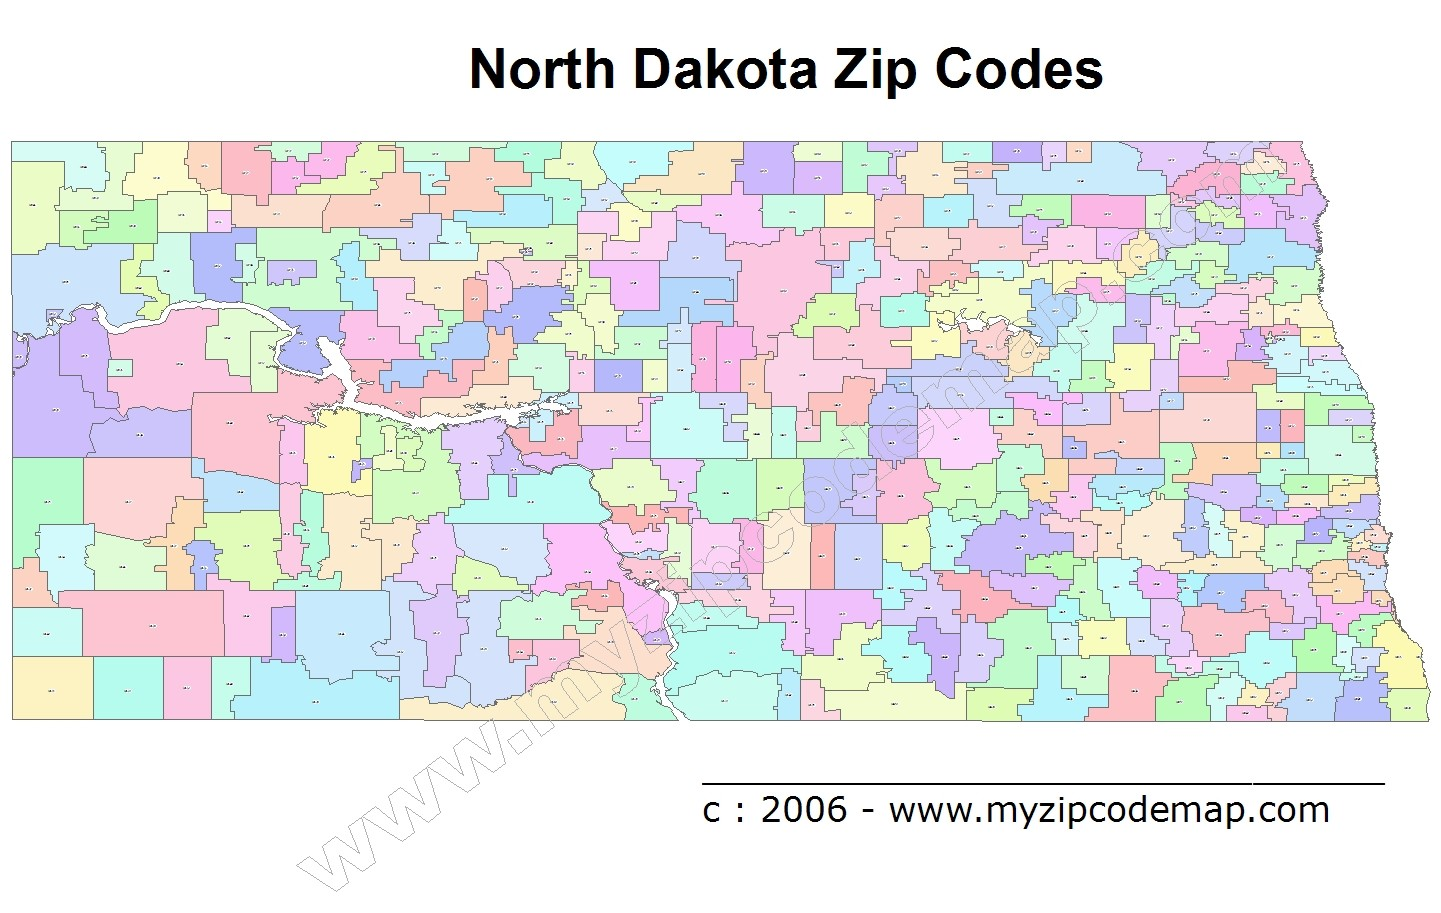 North Dakota Zip Code Maps